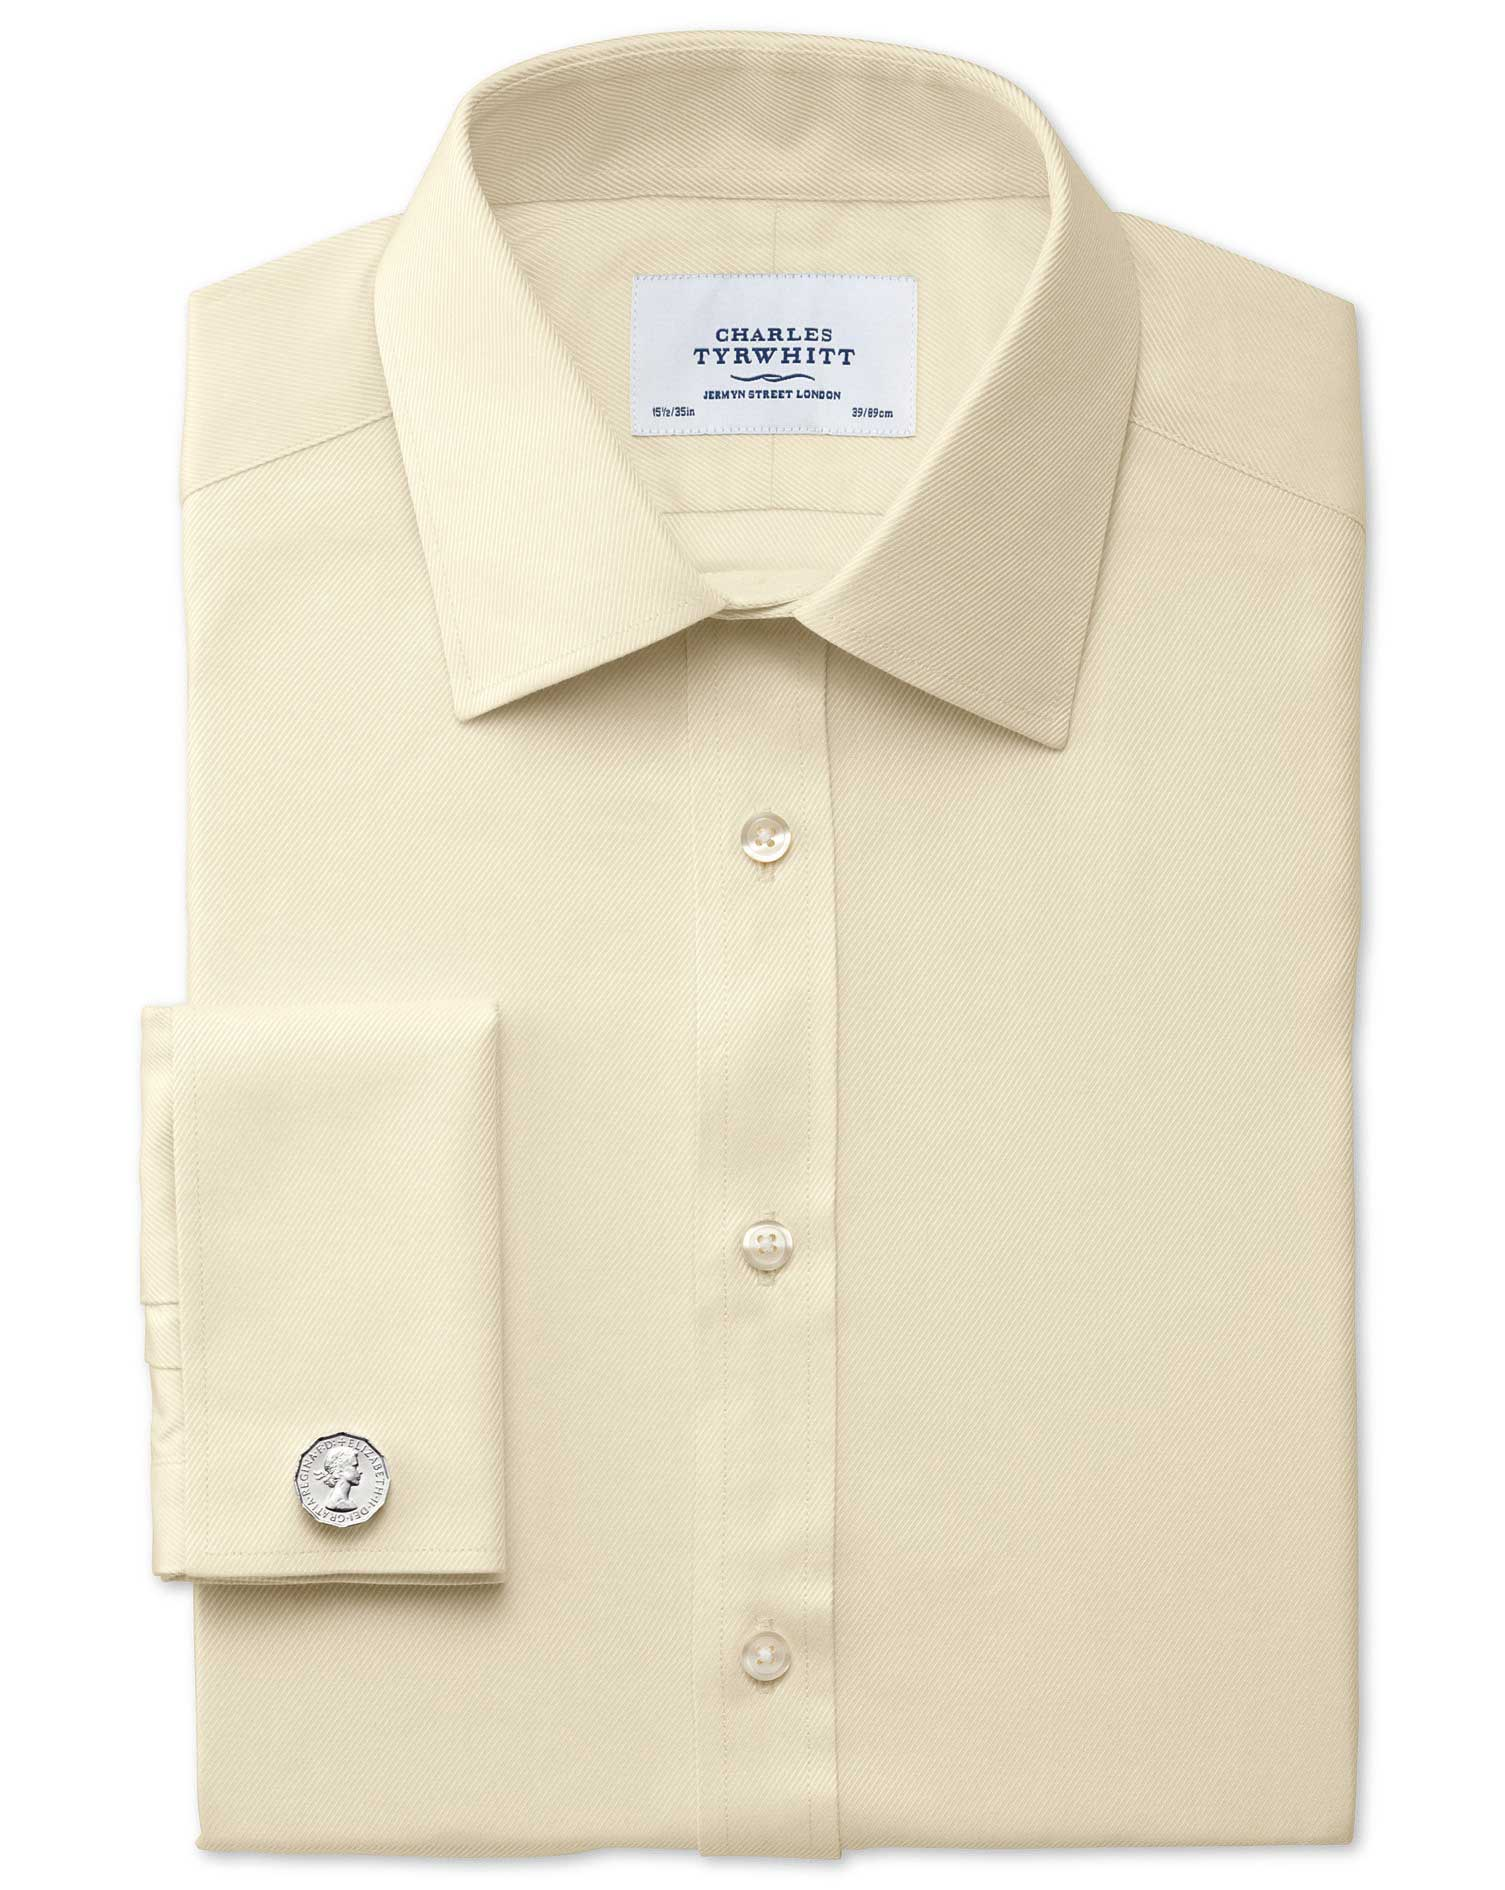 Extra Slim Fit Egyptian Cotton Cavalry Twill Yellow Formal Shirt Double Cuff Size 16.5/38 by Charles